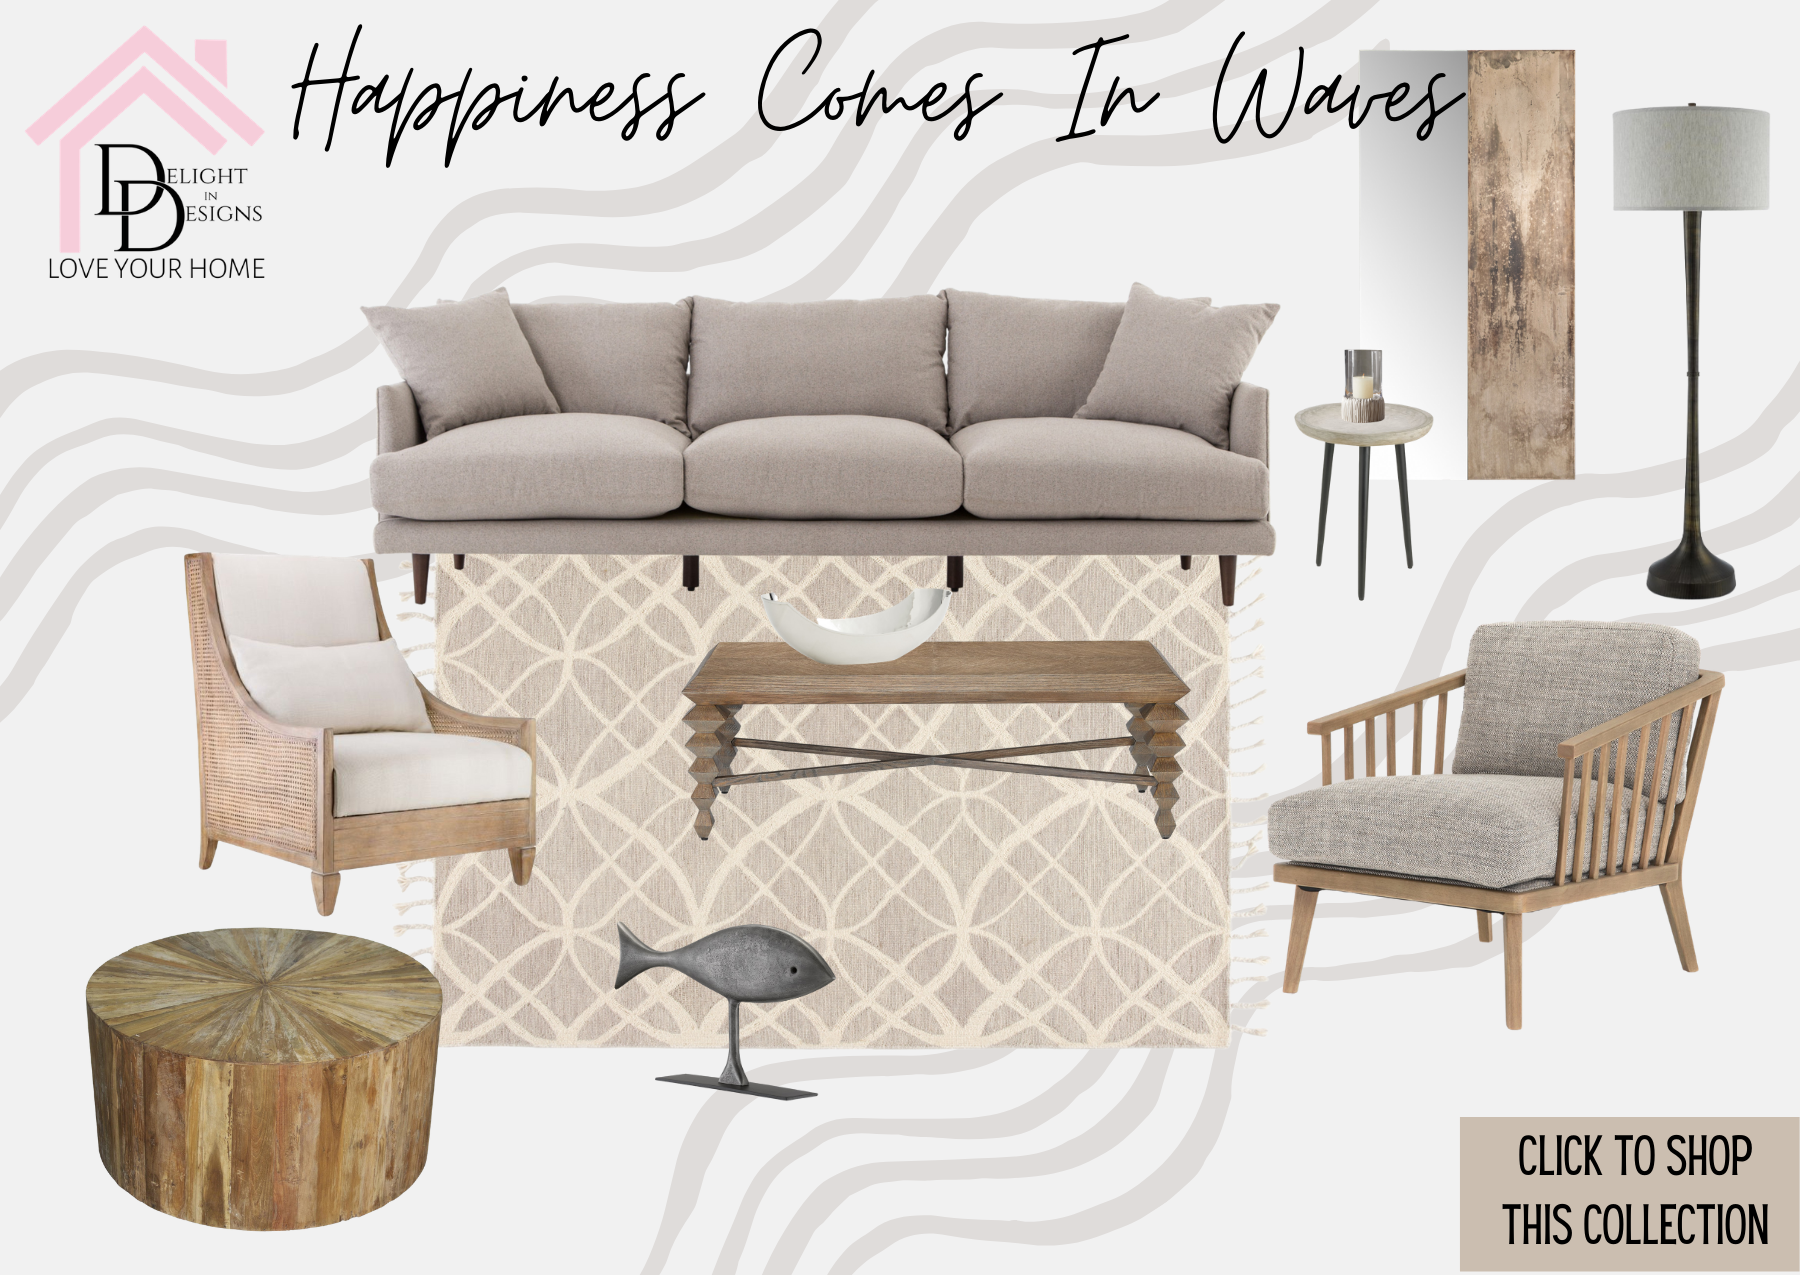 Happiness Comes In Waves Living Collection-Delight In Designs-Grand Rapids MI-West Michigan-Interior Design